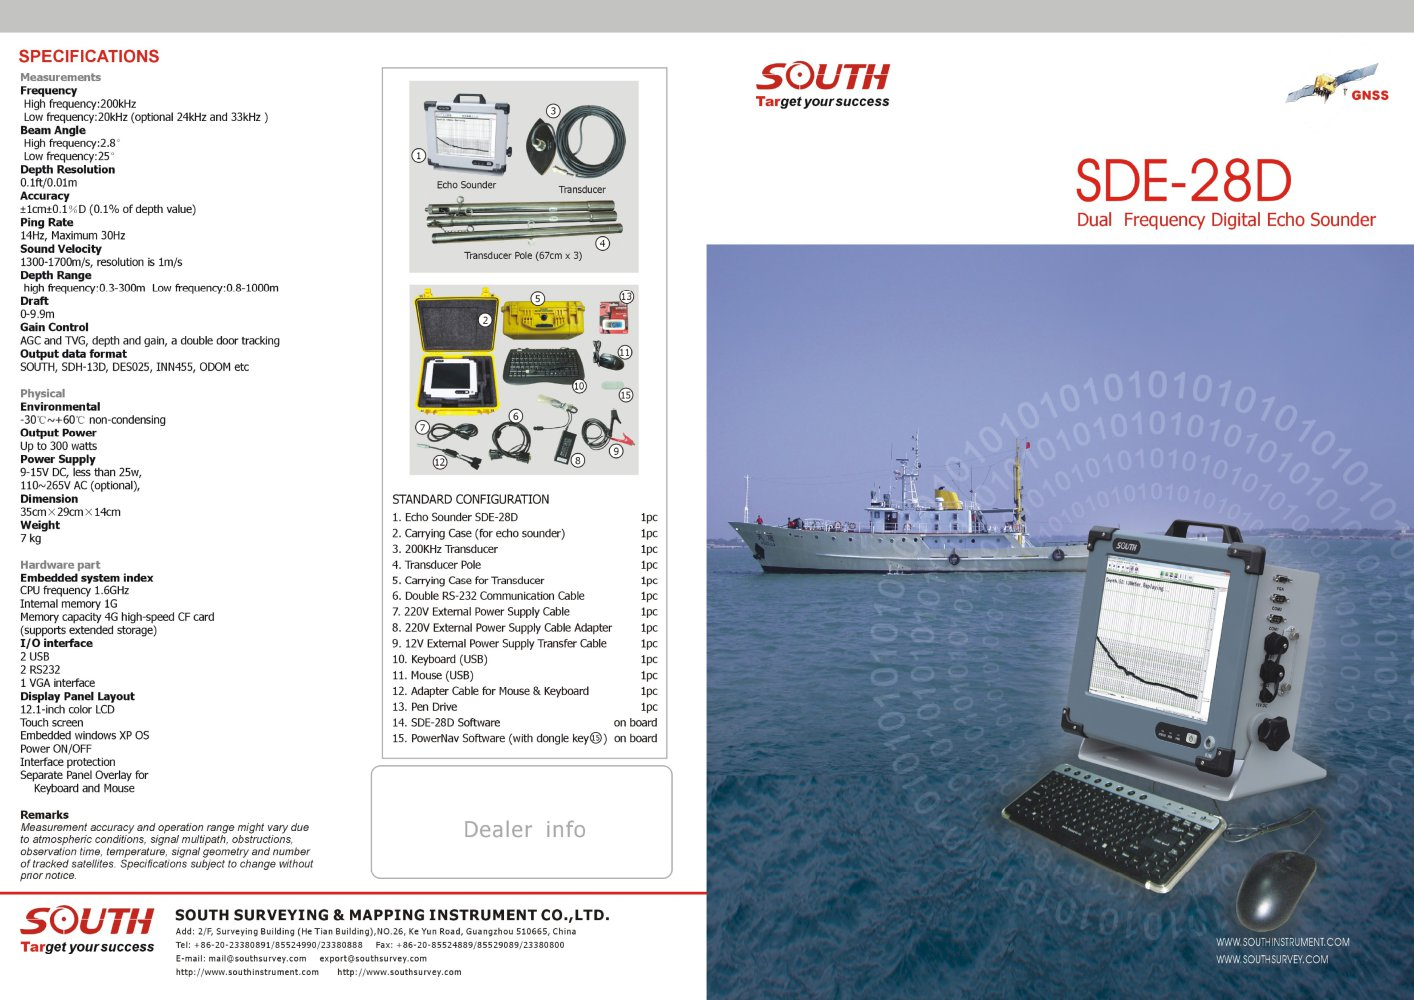 dual-frequency-digital-echo-sounder-south-sde-28d